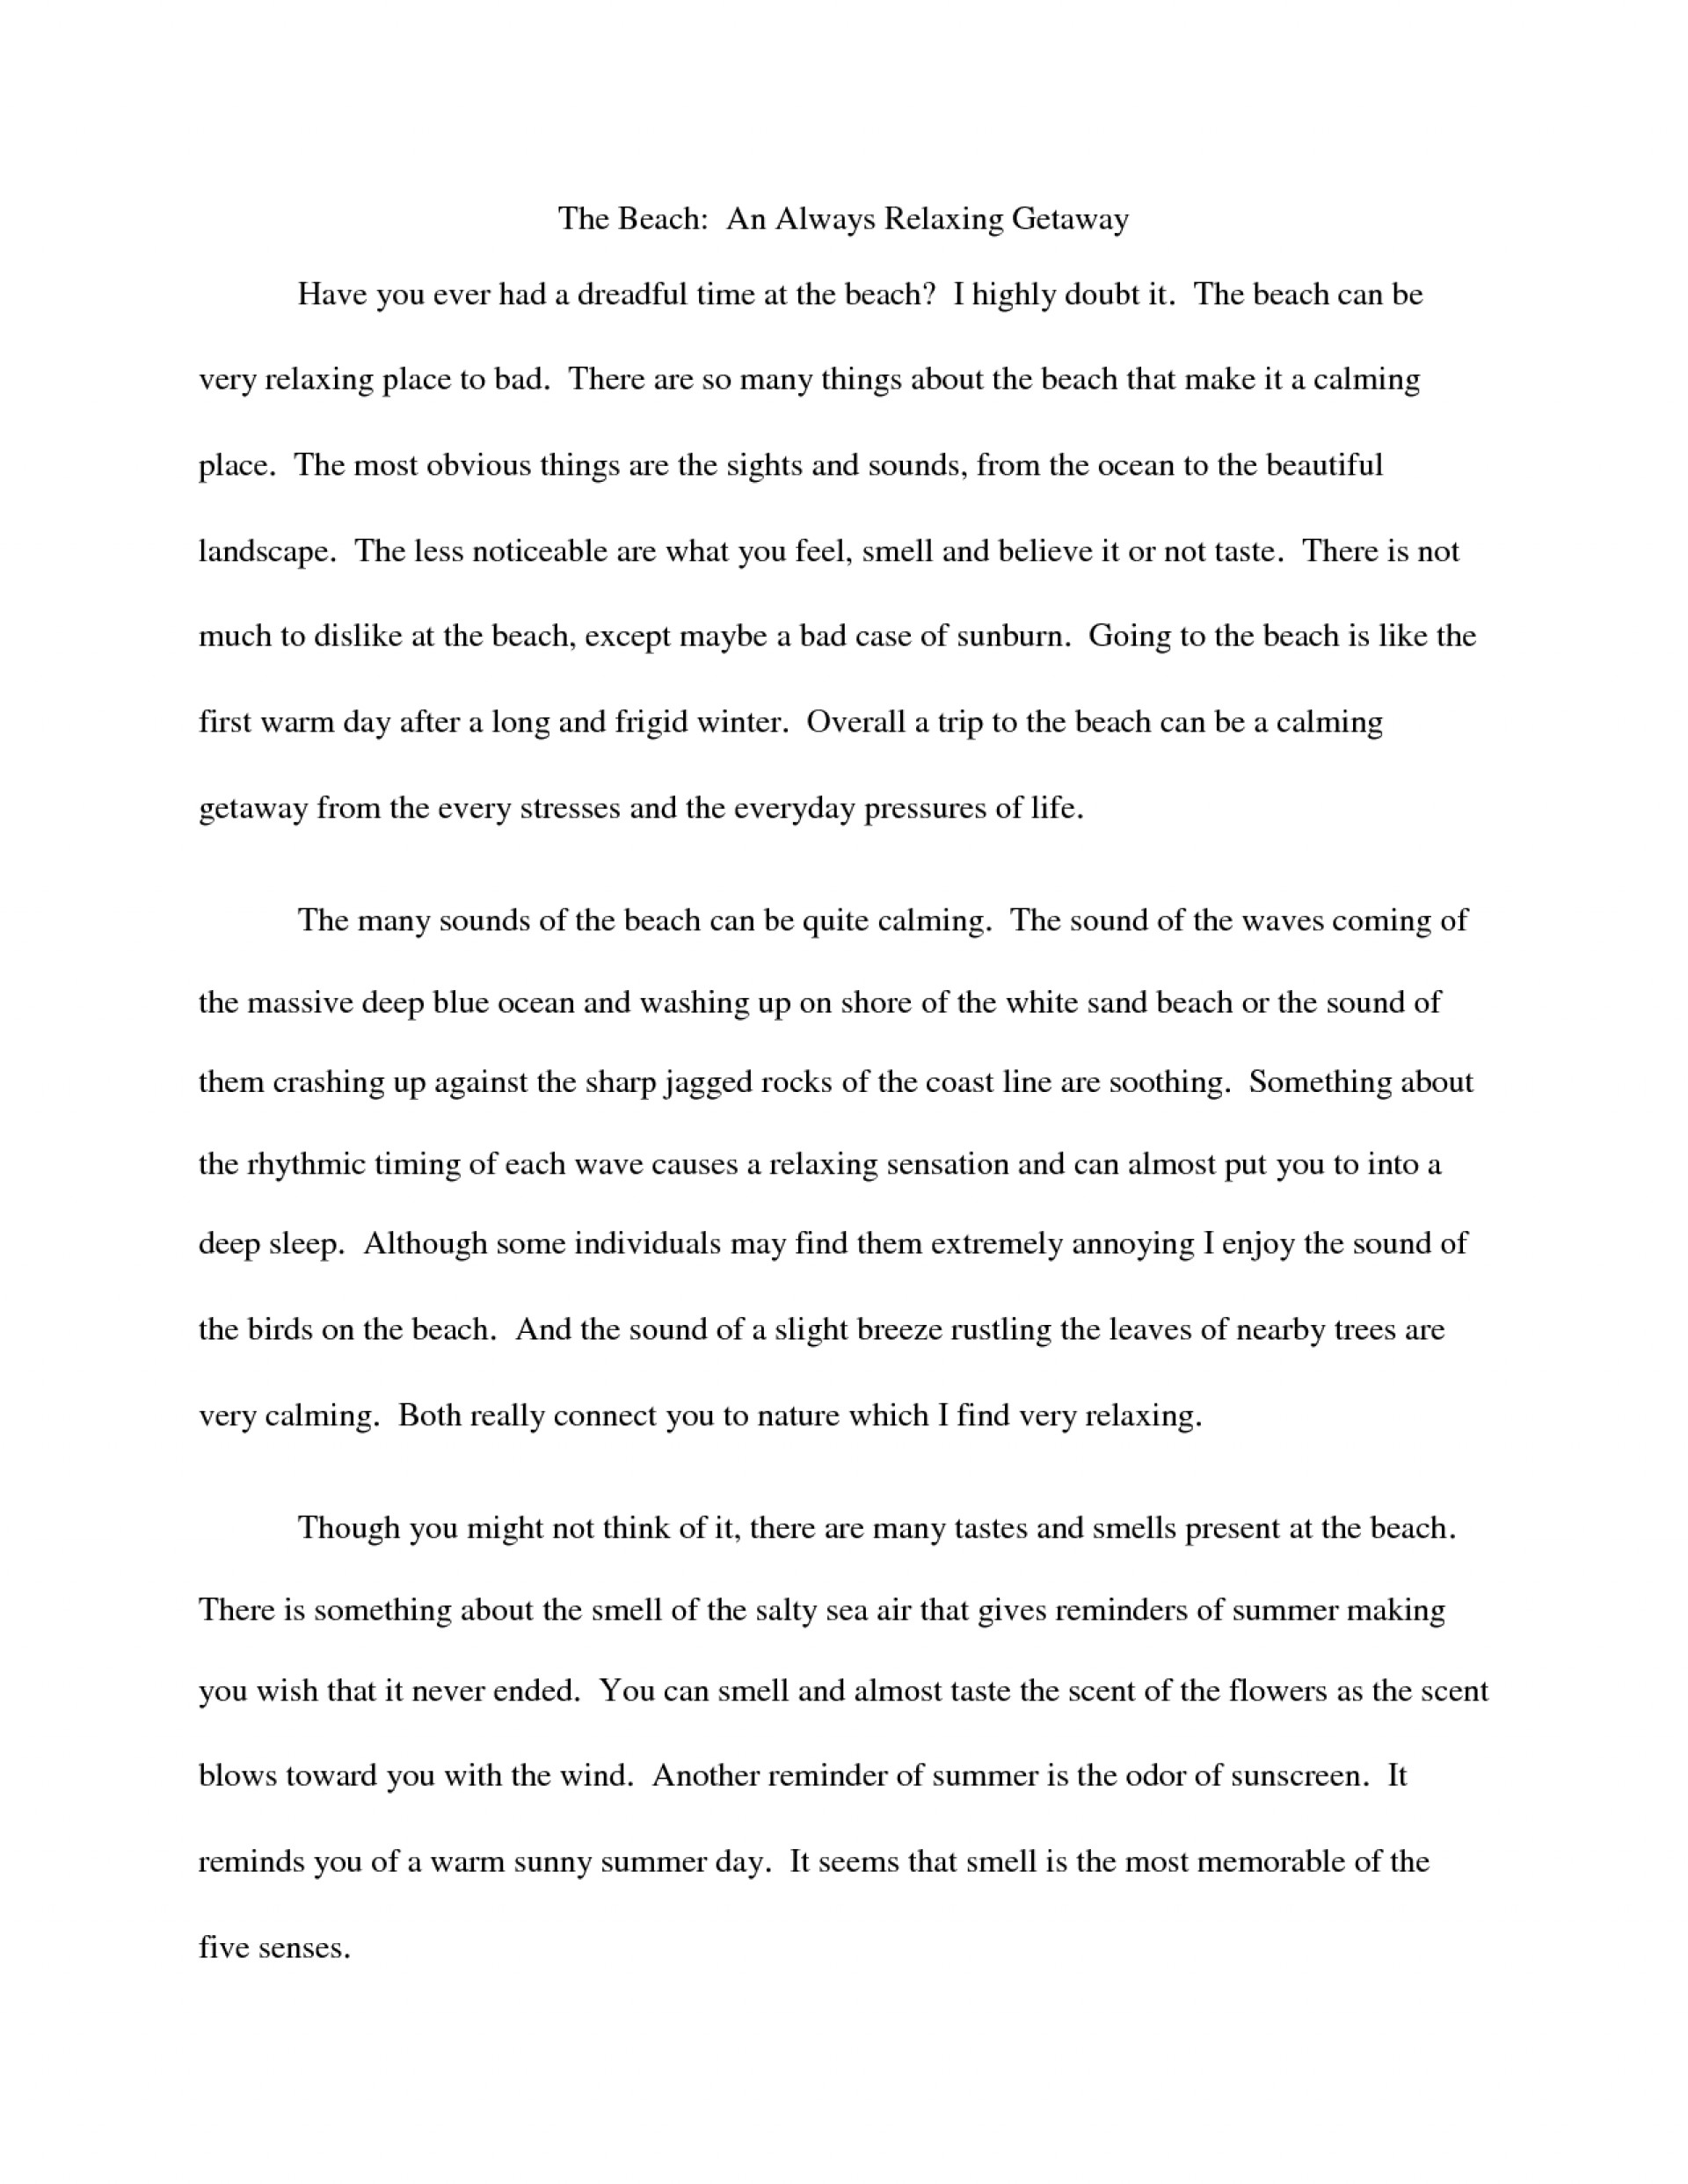 006 Essay Example Descriptive Beach Essays College That Stand Out Odvqltnc Short On The Sunset Paper Barefoot About Walk Vacation Narrative At Night Free Unbelievable Examples For Grade 7 Middle School Sample Pdf 1920